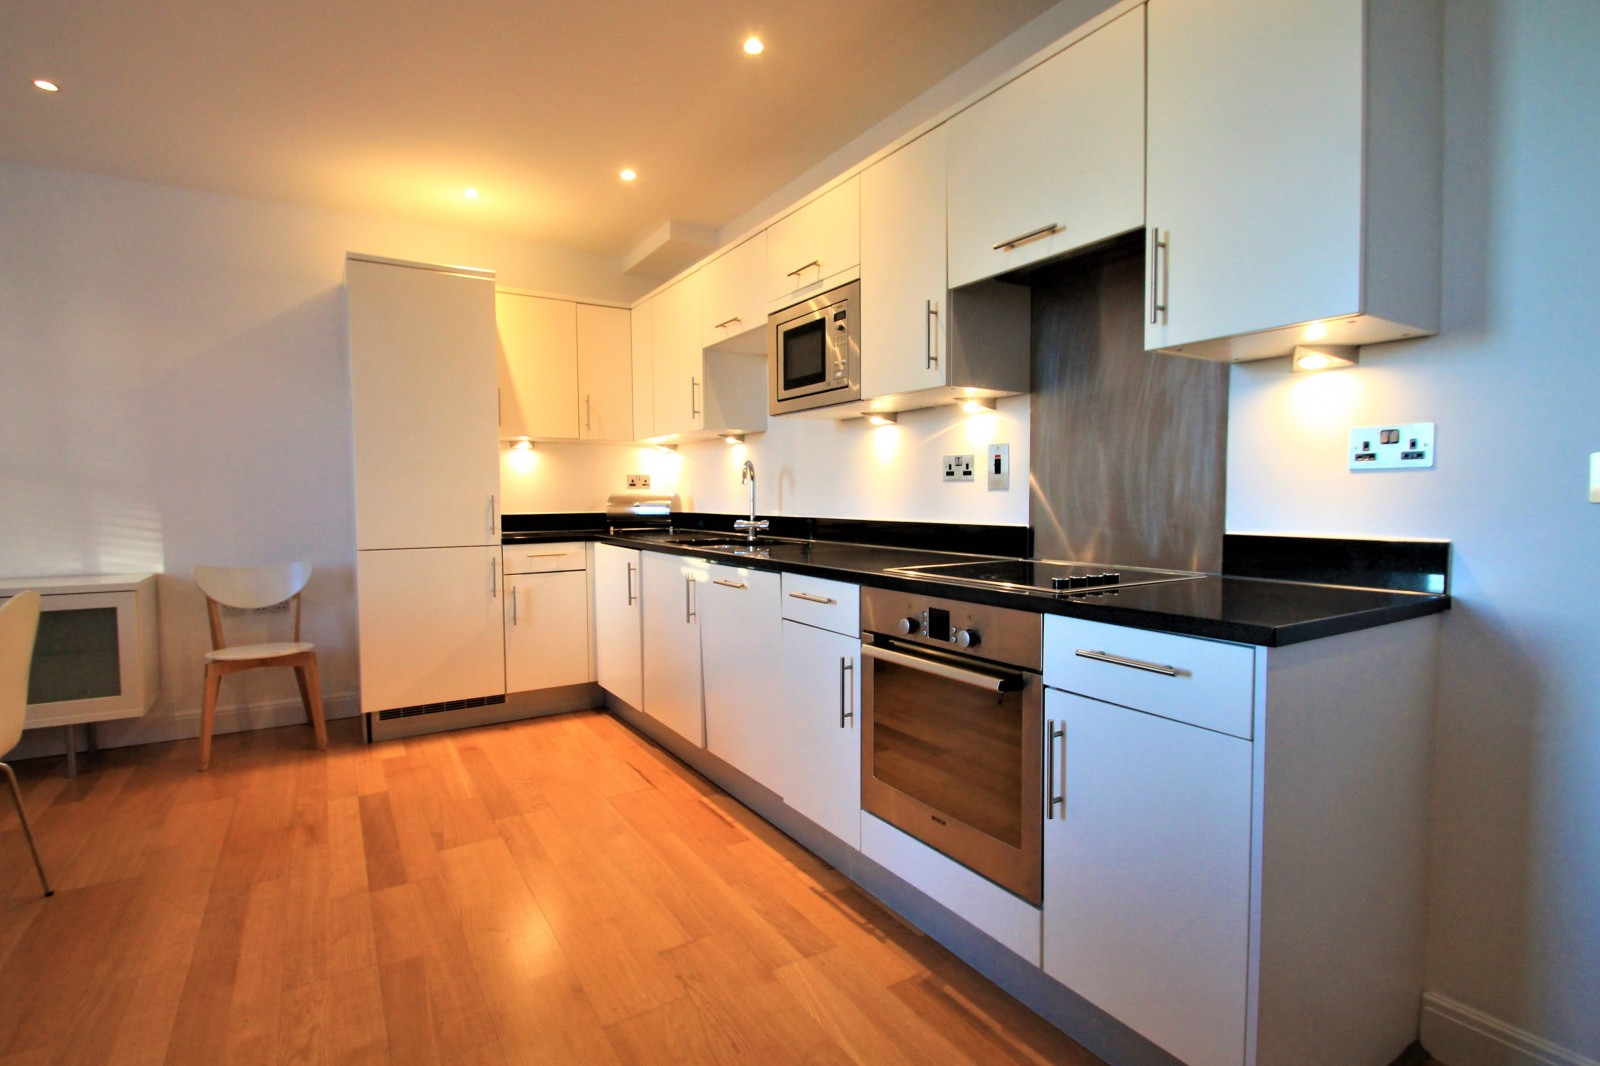 Foyer Apartments Clapham South : Bedroom flat to rent latitude apartments clapham south